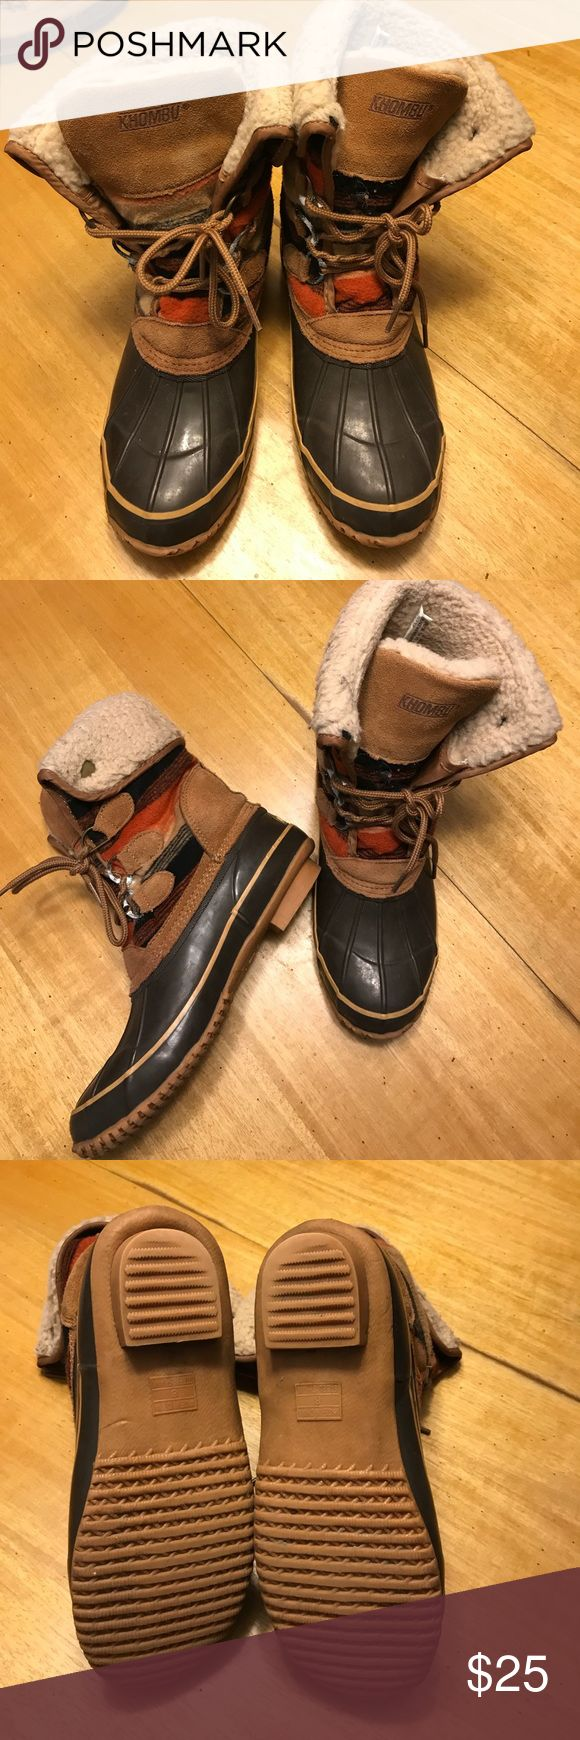 Khombu Boots Winter boots • worn one season • foot lining is missing in right boot (loose in left) • there is wear in the lacing and inside, but actual boot has lots of life left Khombu Shoes Winter & Rain Boots